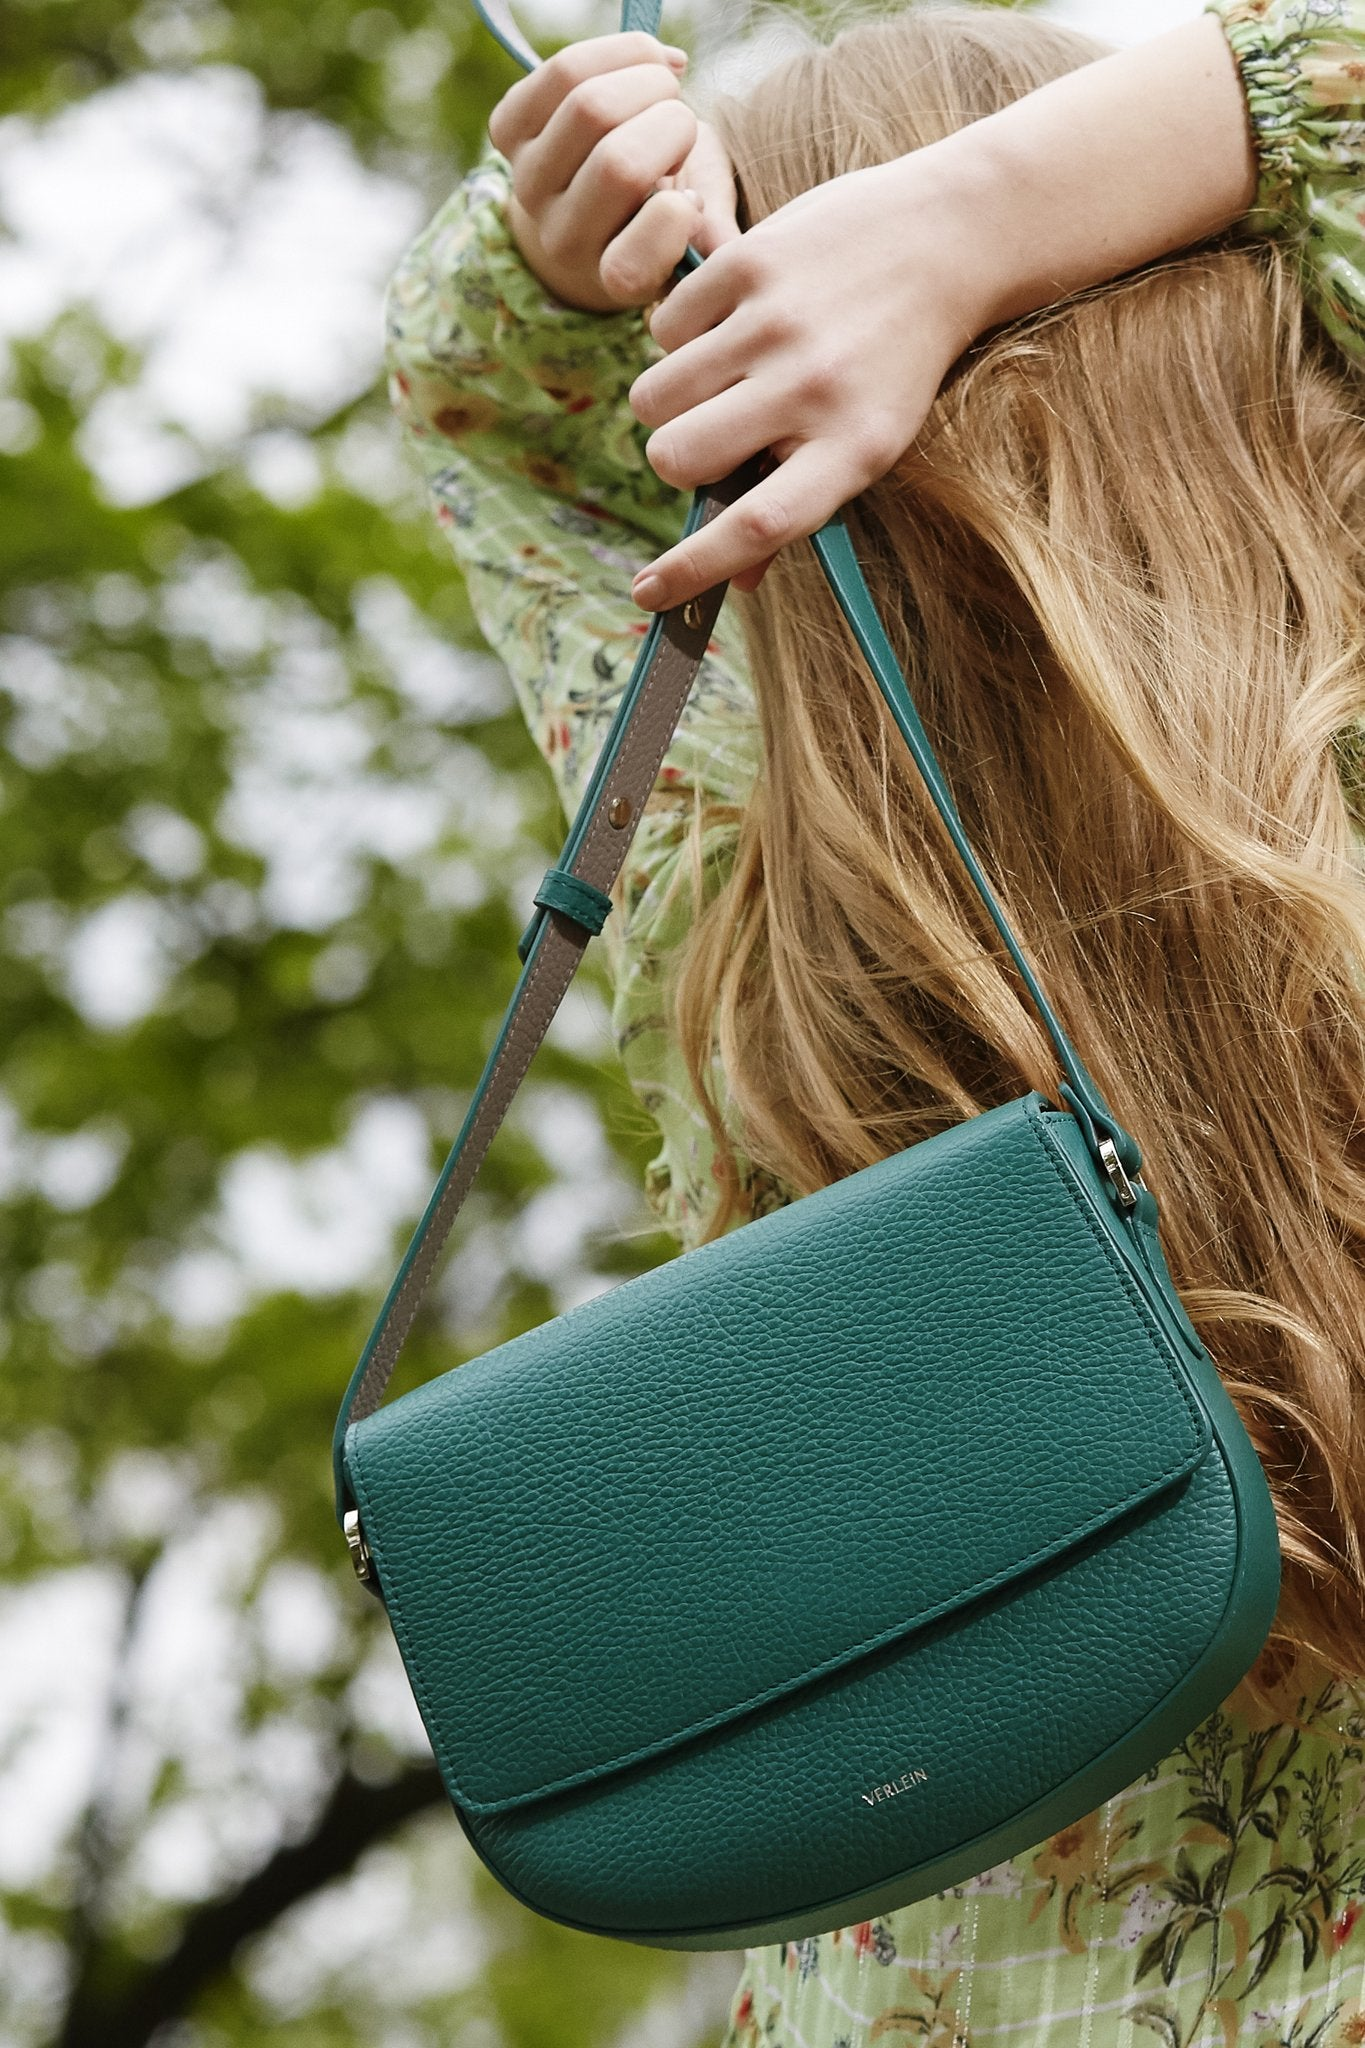 Ana Crossbody Bag - Emerald Green, from Verlein